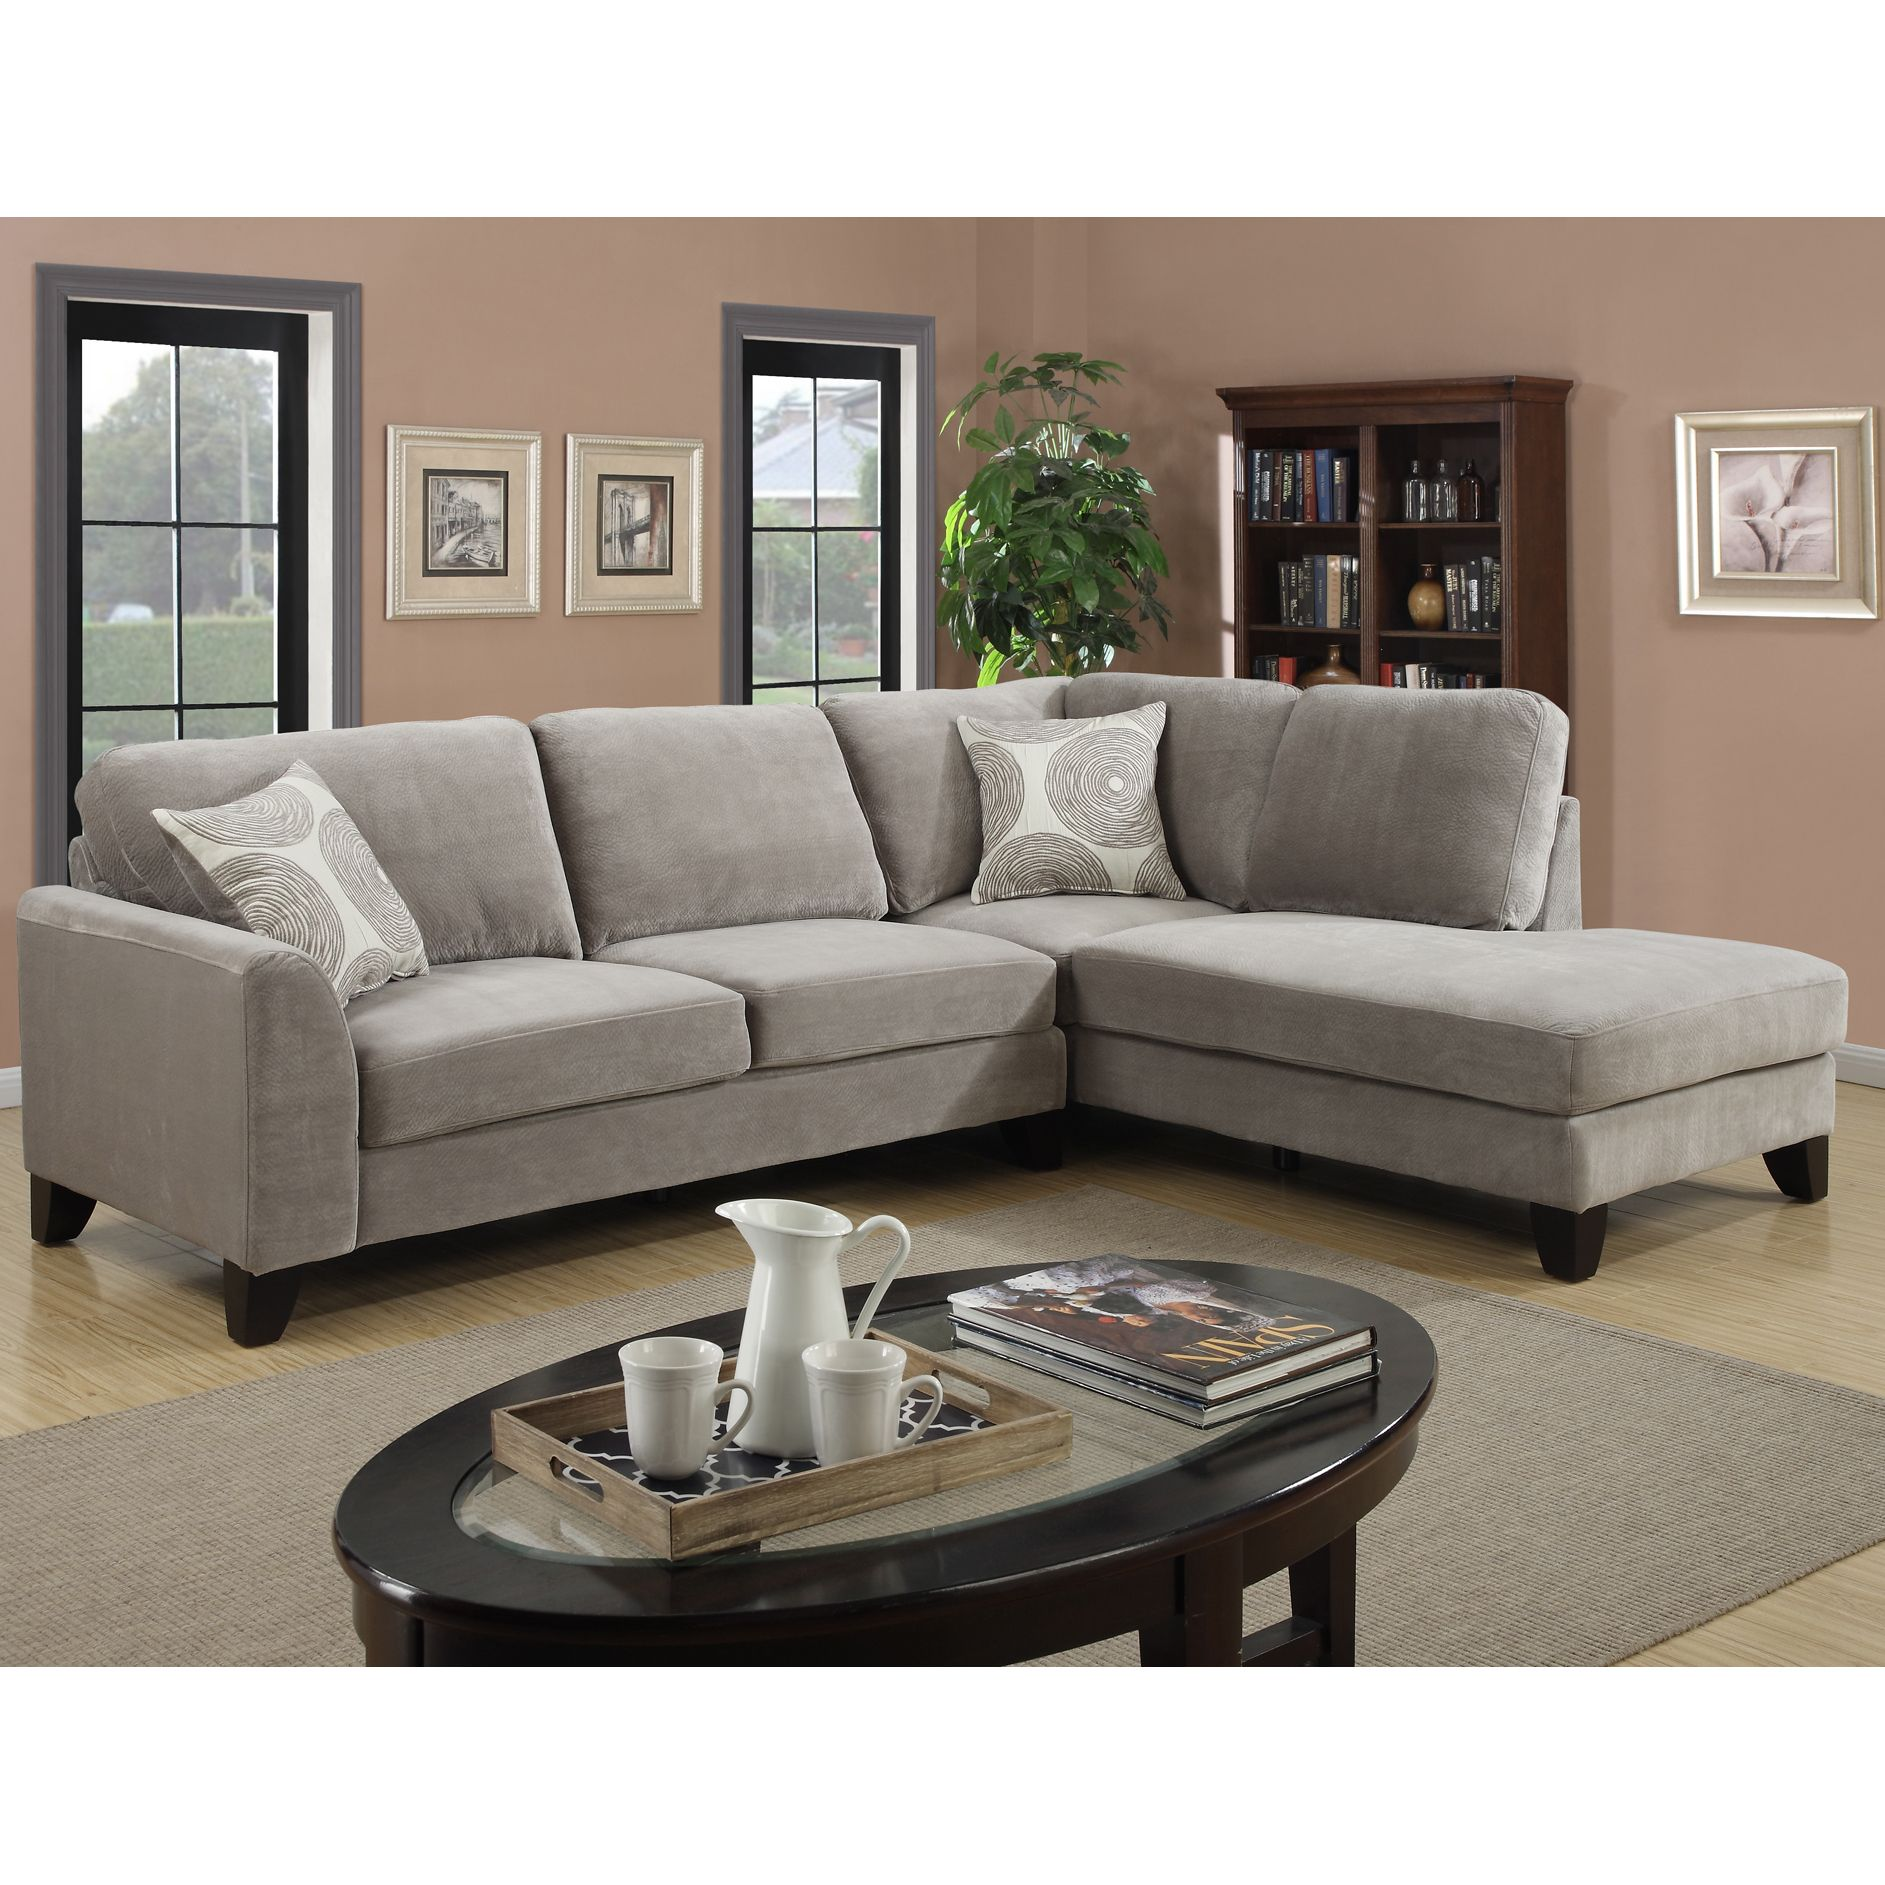 Best Porter Reese Dove Grey Sectional Sofa With Optional 640 x 480